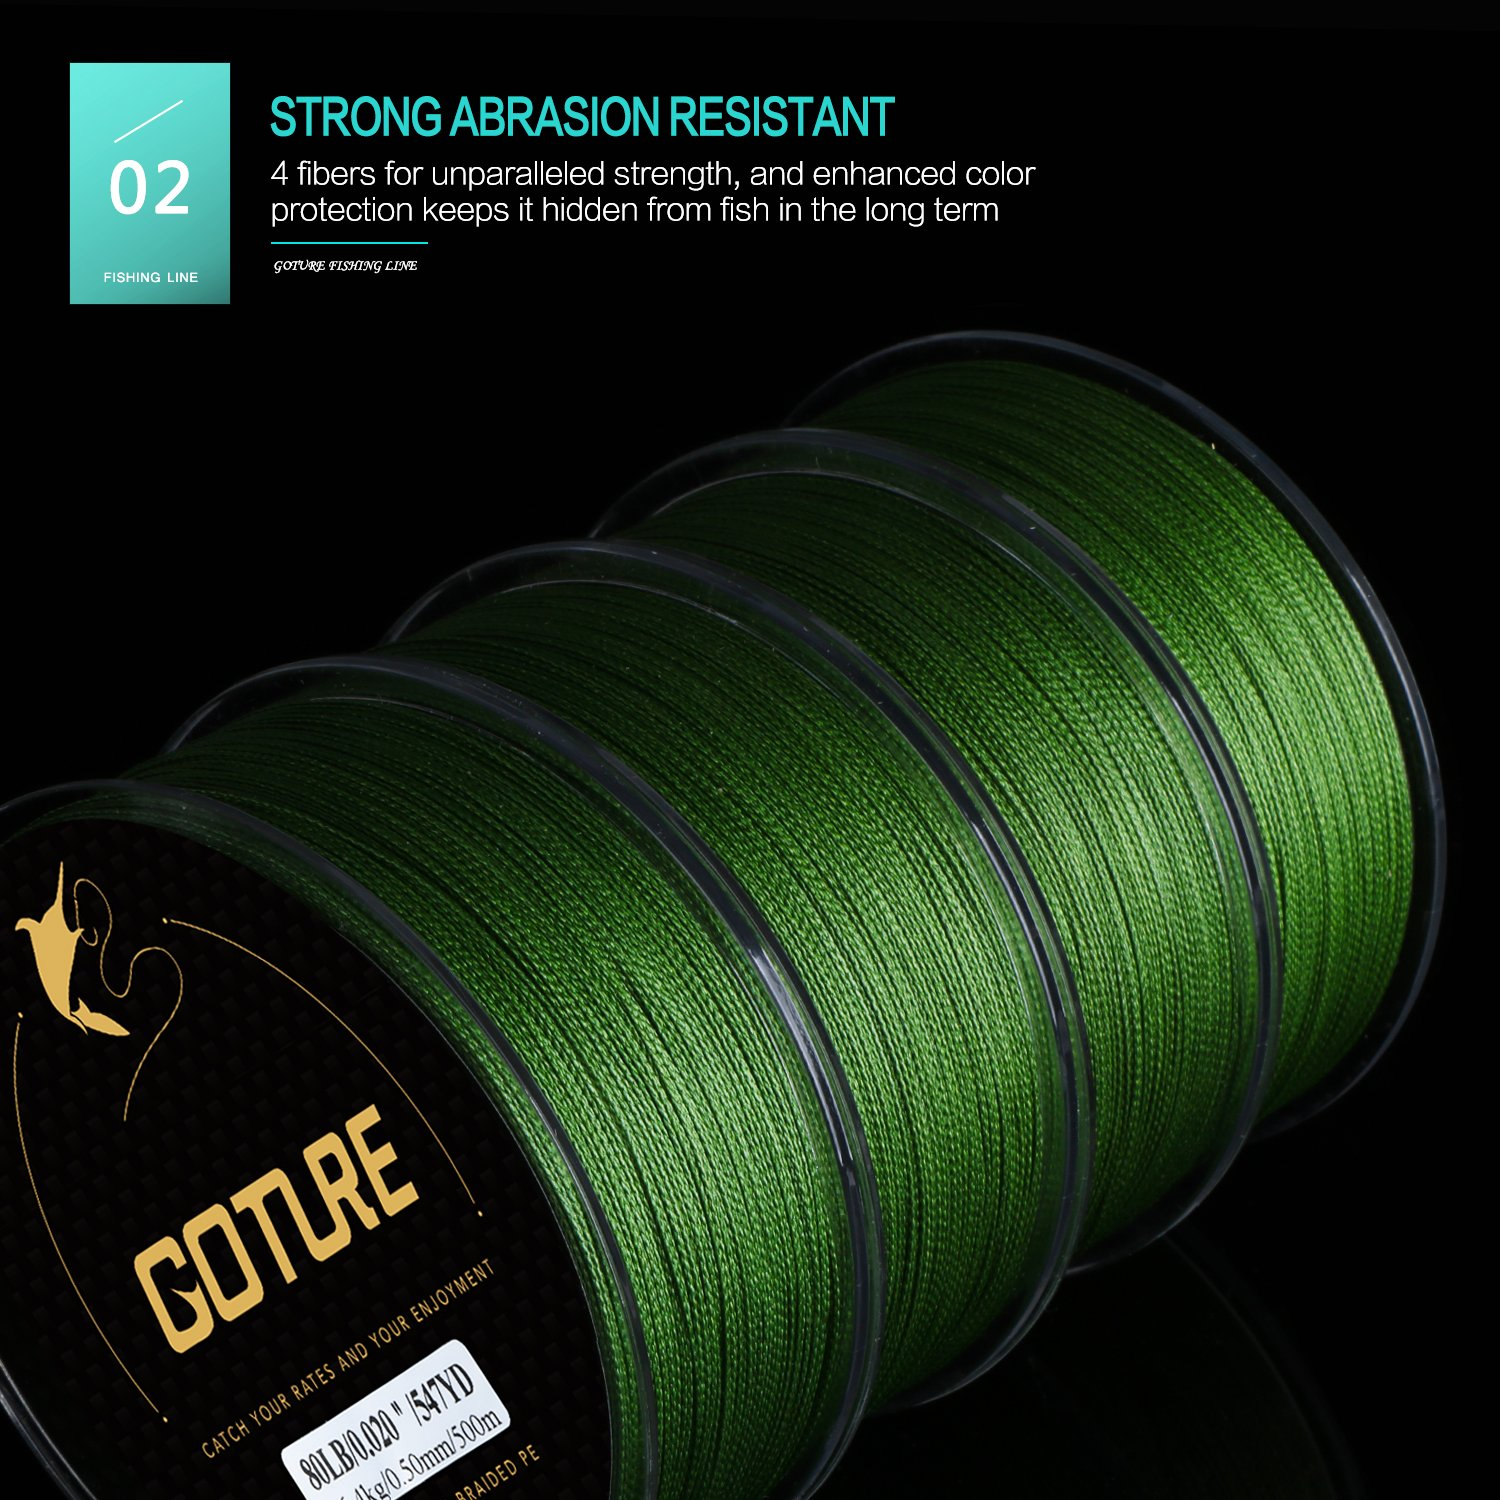 Goture 8-80LB Superpower Braided Fishing Line-Zero Stretch and High Tension Advanced Multifilamentline for Saltwater and Freshwater - Army Green, Blue, Blackish Green, Grey, Yellow- 2017 New by Goture (Image #3)